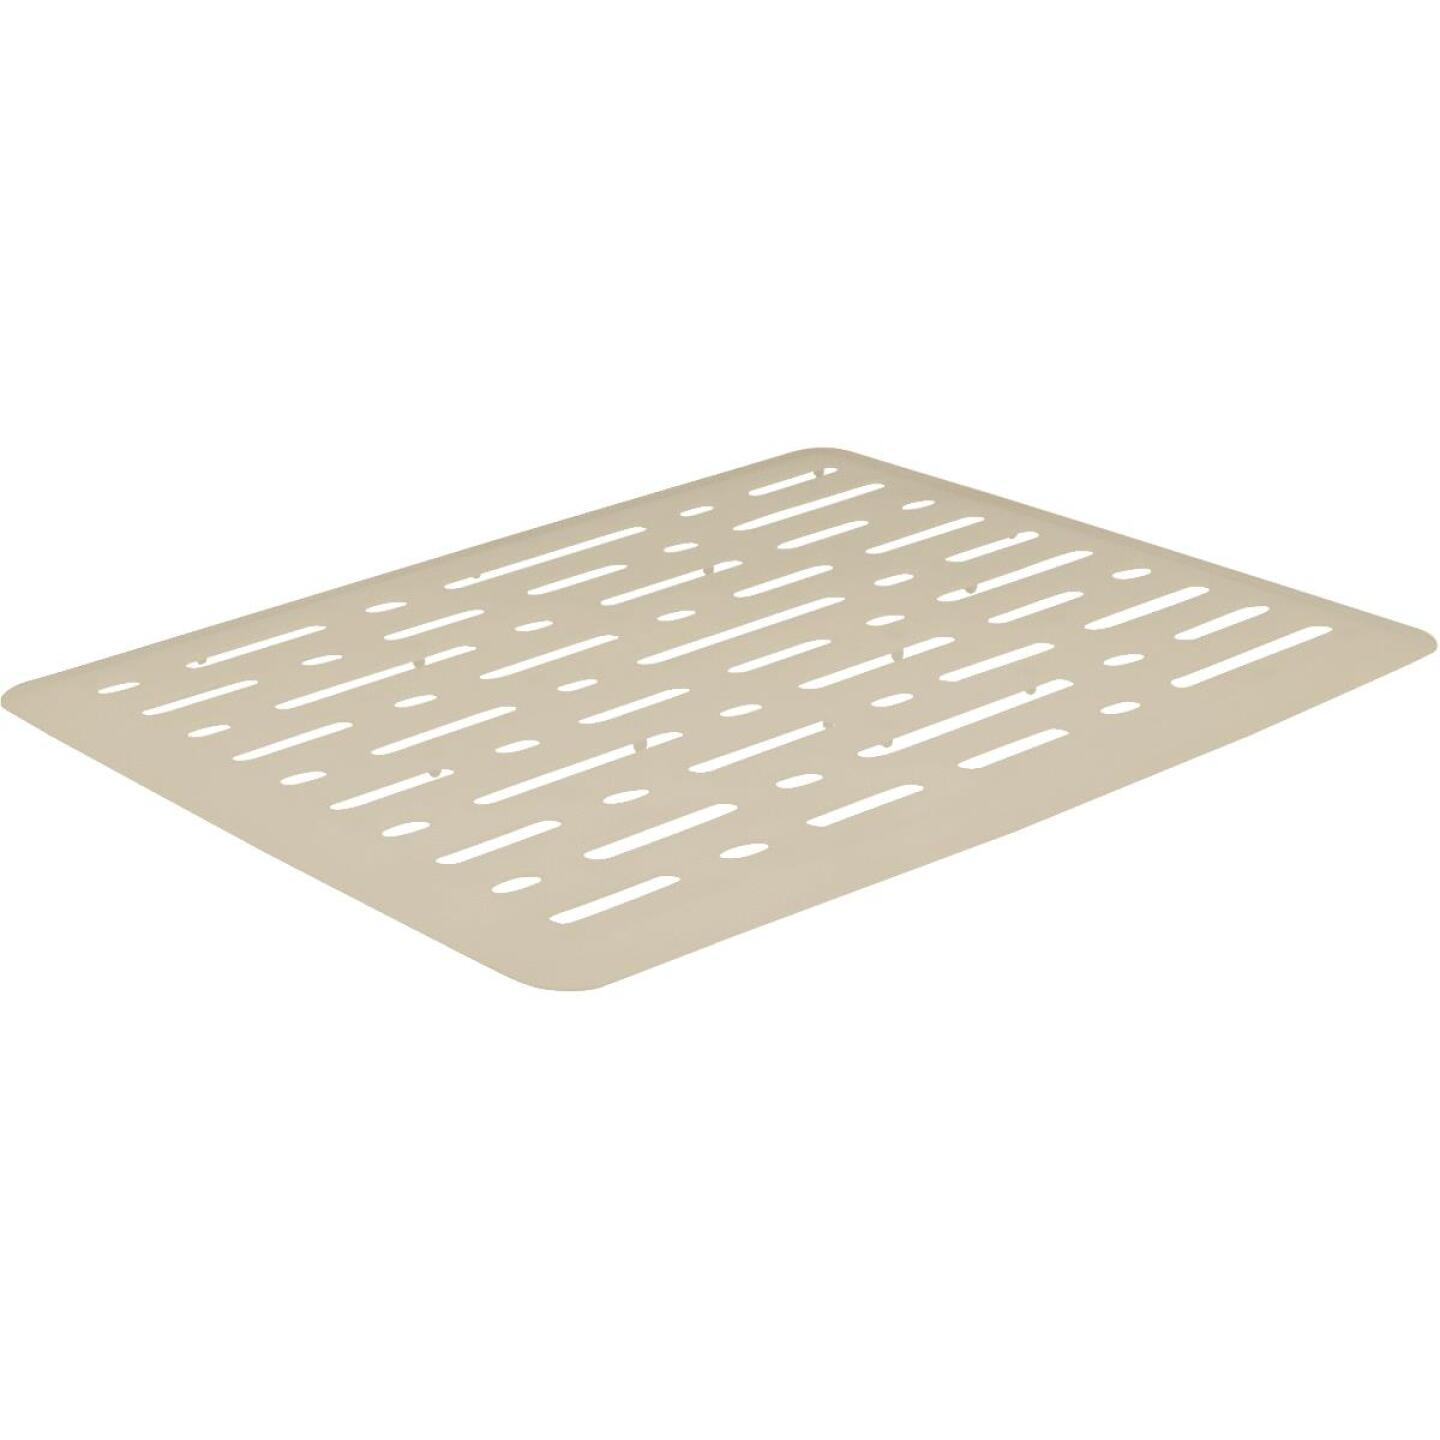 Rubbermaid 10.7 In. x 12.7 In. Bisque Sink Mat Image 1